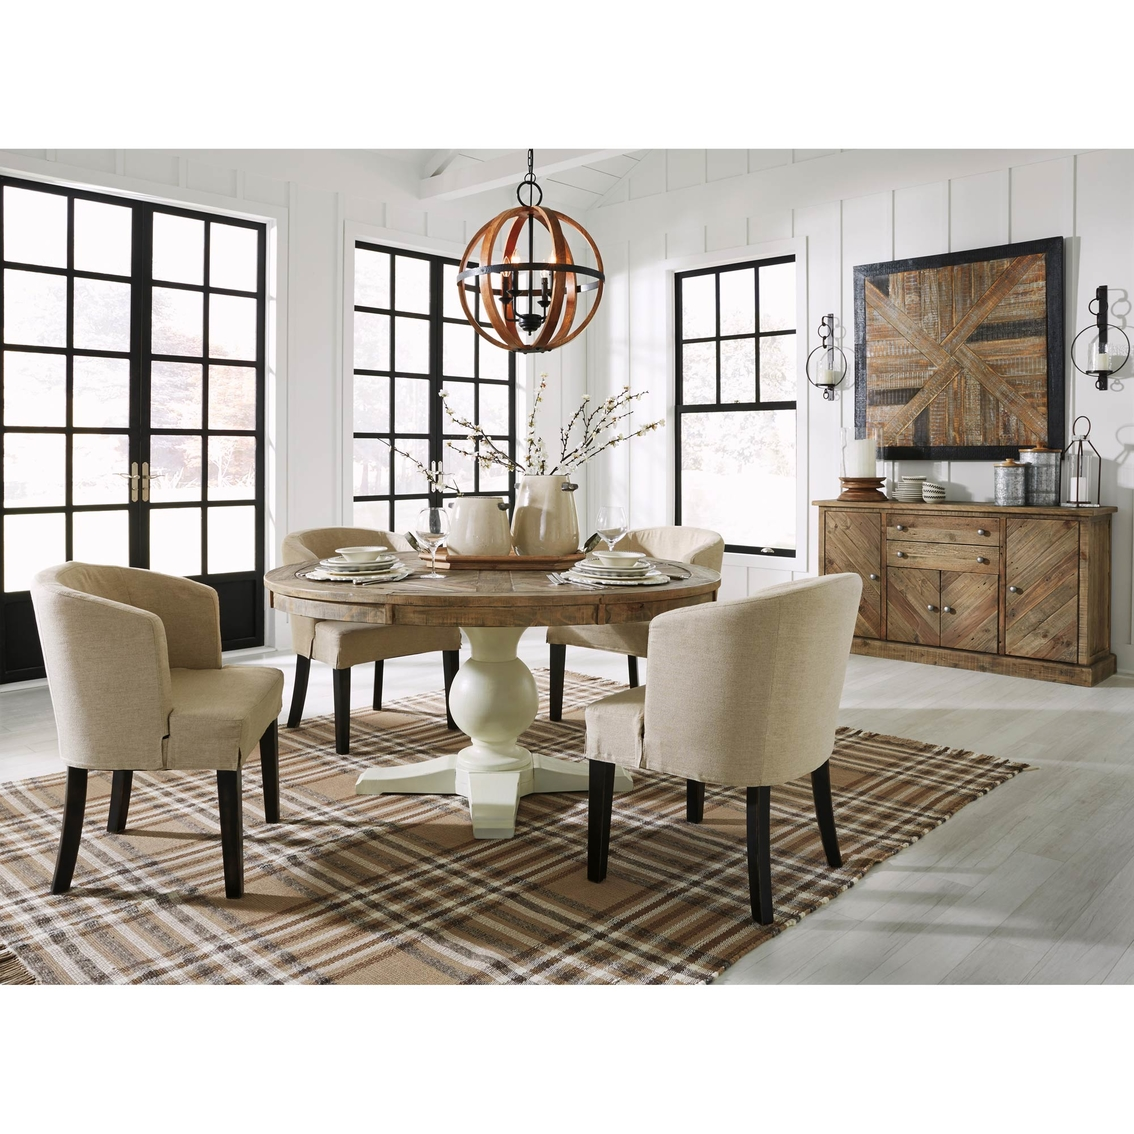 Grindleburg Dining Room Table Round: Signature Design By Ashley Grindleburg 5 Pc. Round Dining